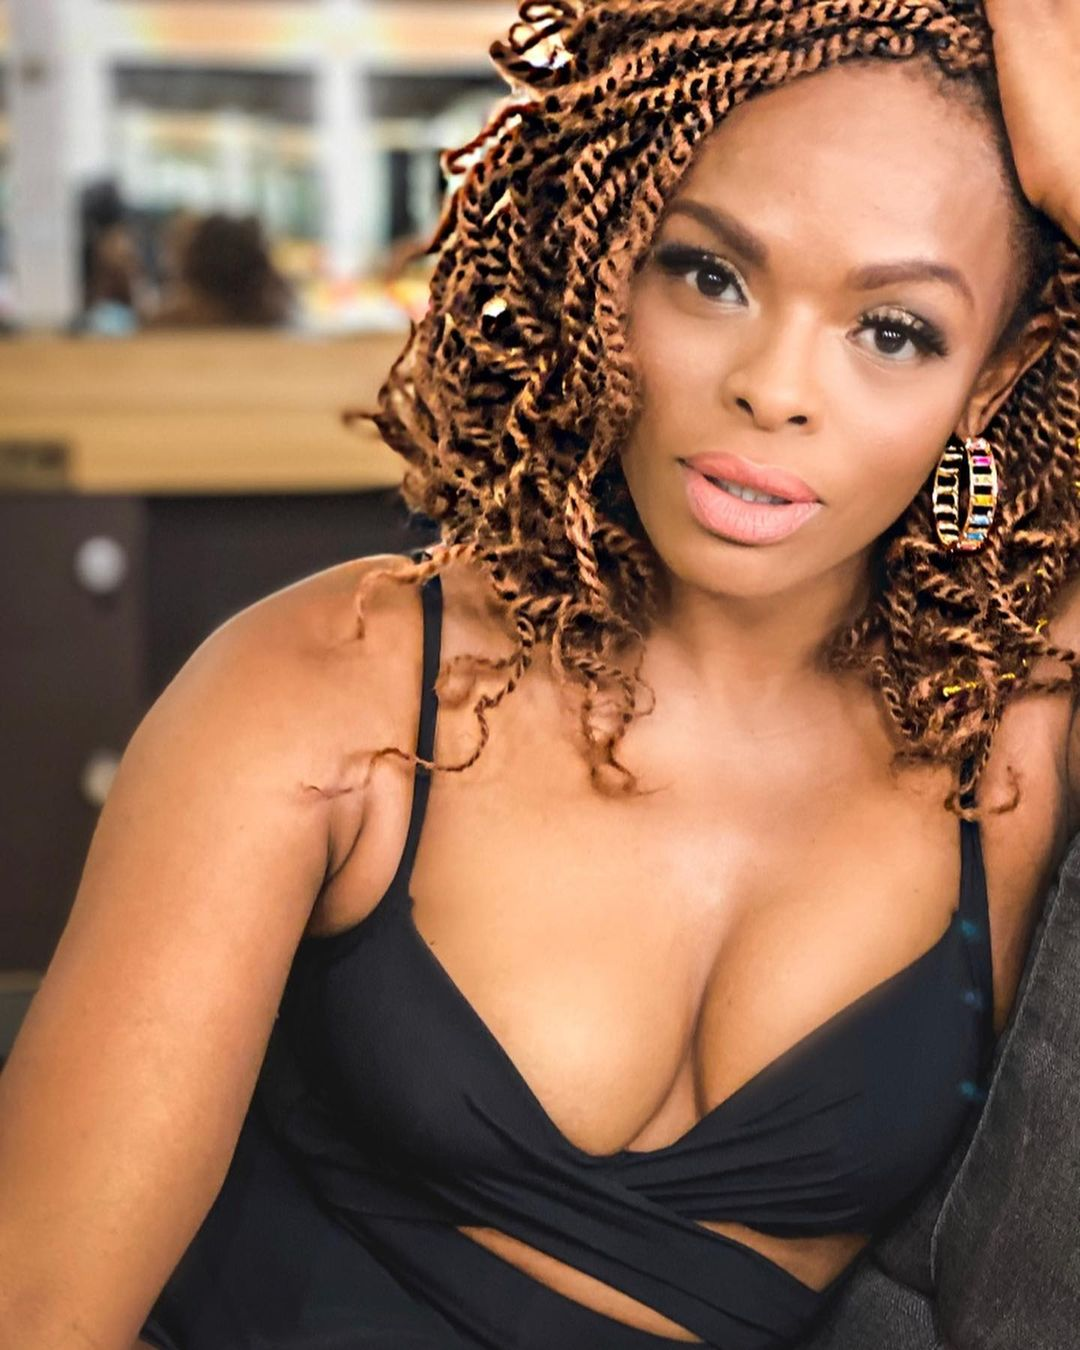 Watch: Unathi assaulted by a violent taxi driver – Opens court case